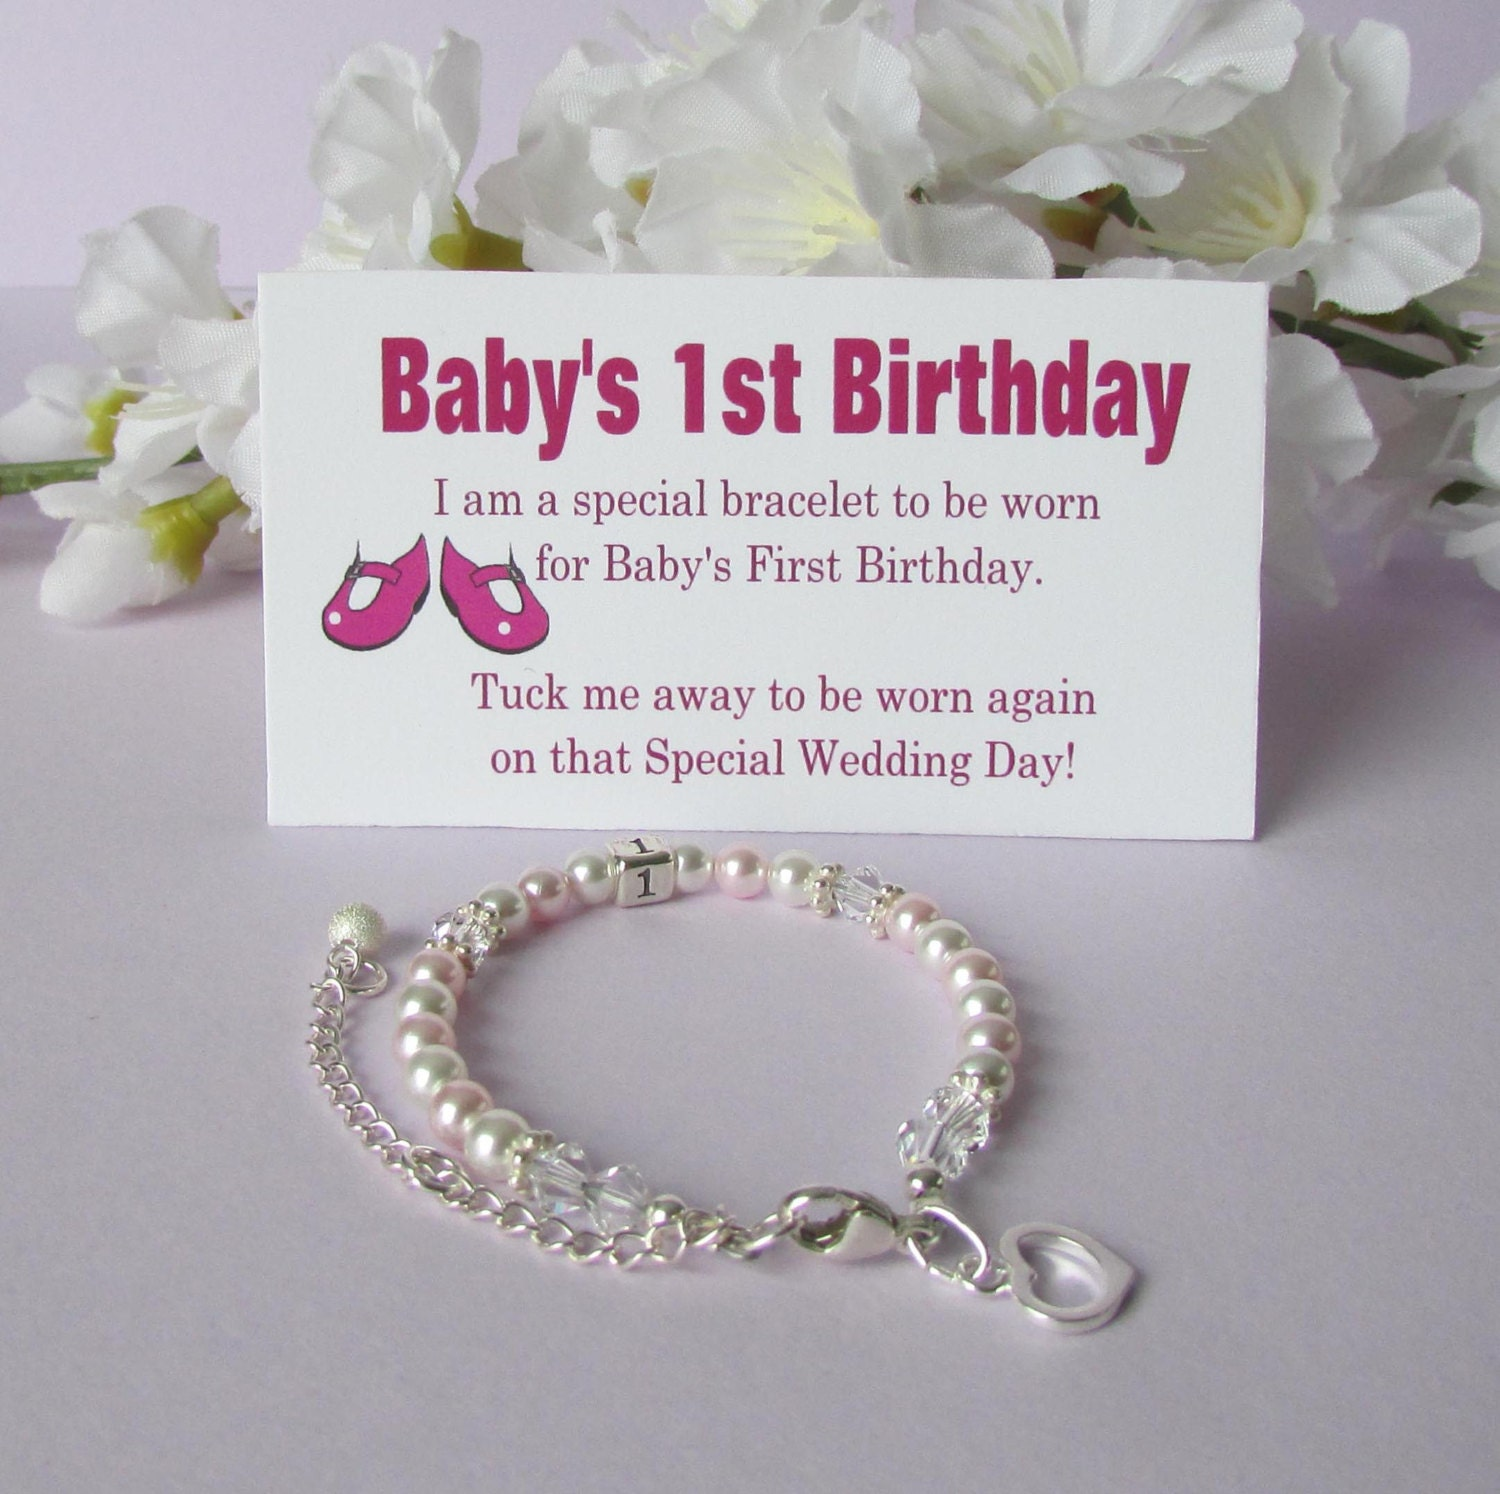 Baby S 1st Birthday Gift Bracelet Baby To Bride 174 Growing